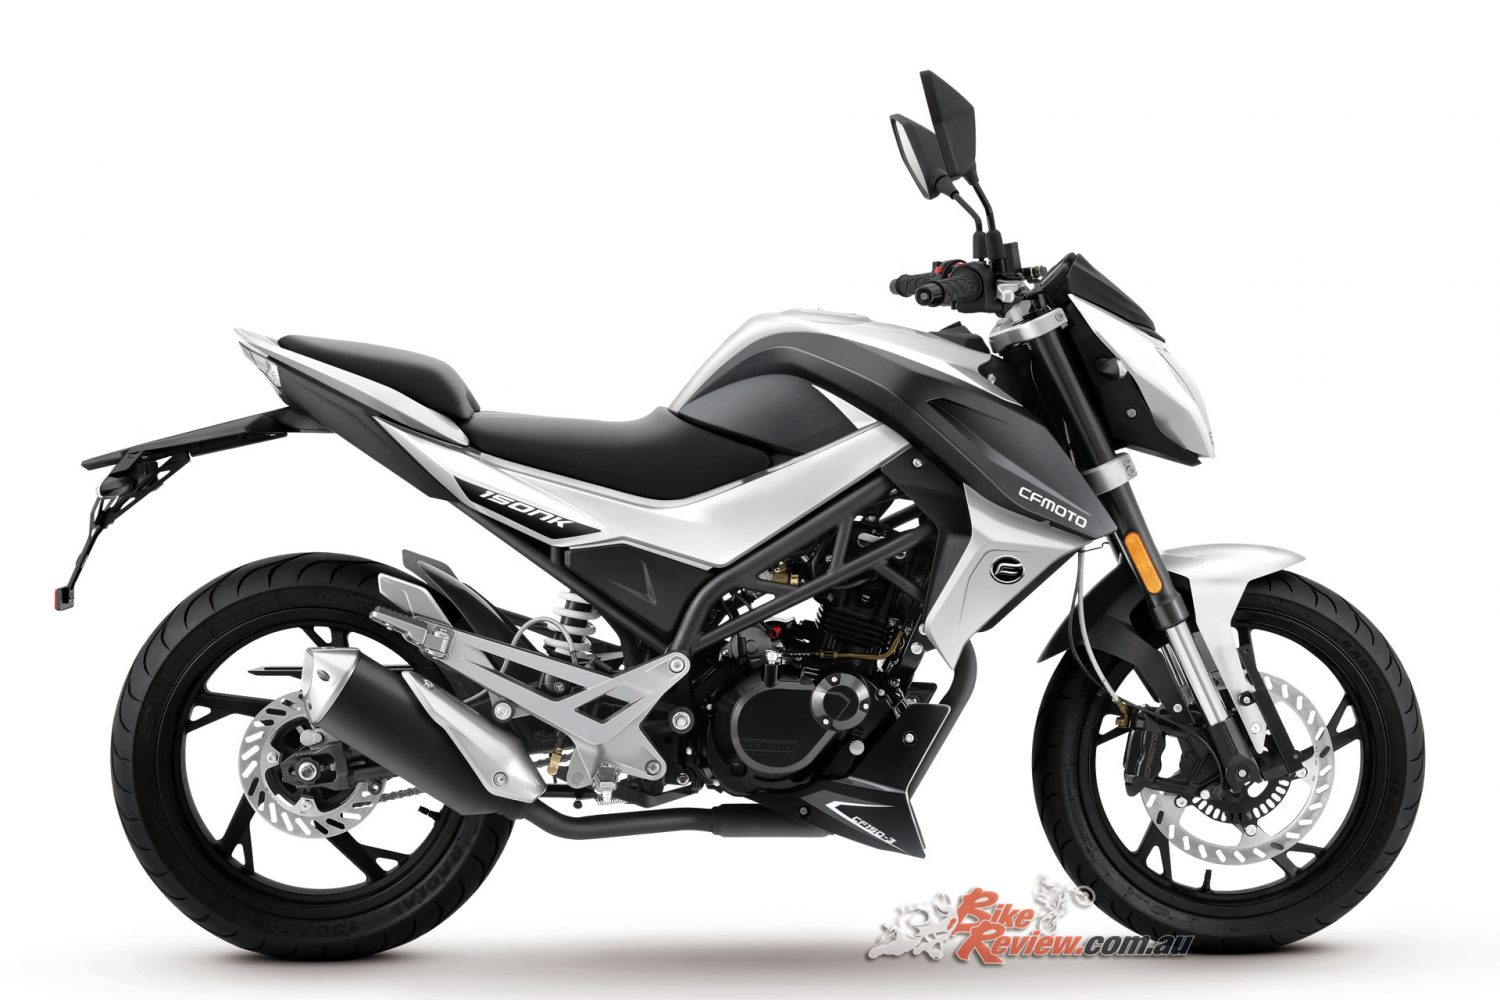 Cf Moto 150nk Available For 3 290 R A With Helmet Jacket